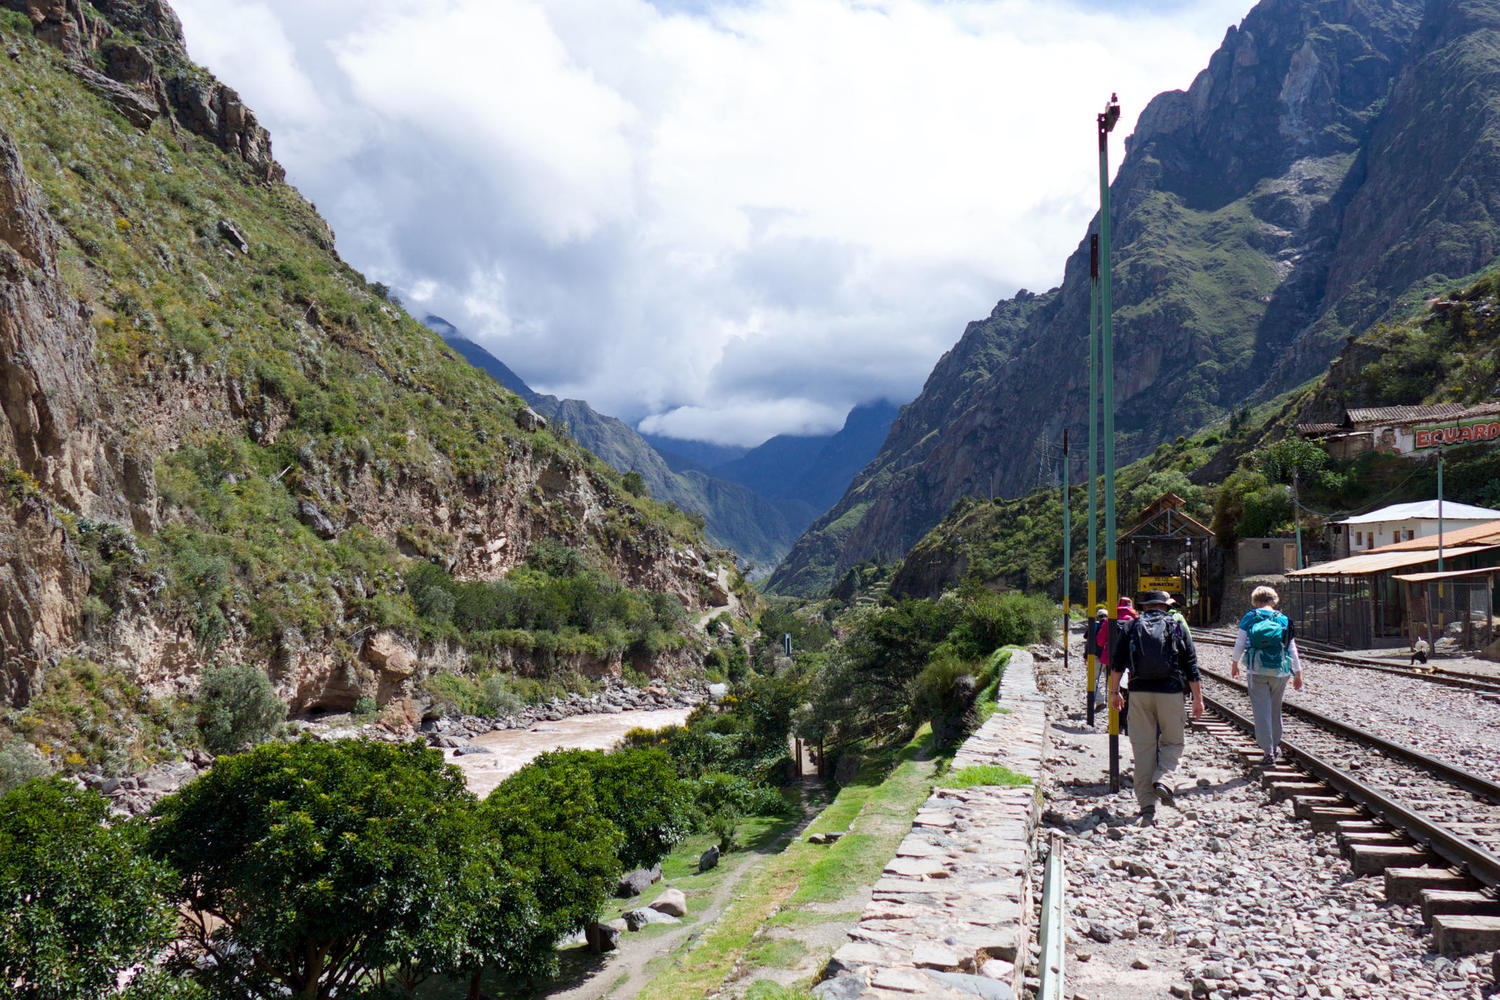 Walking towards the bridge over the Urubamba River that marks the start of the Inca Trail